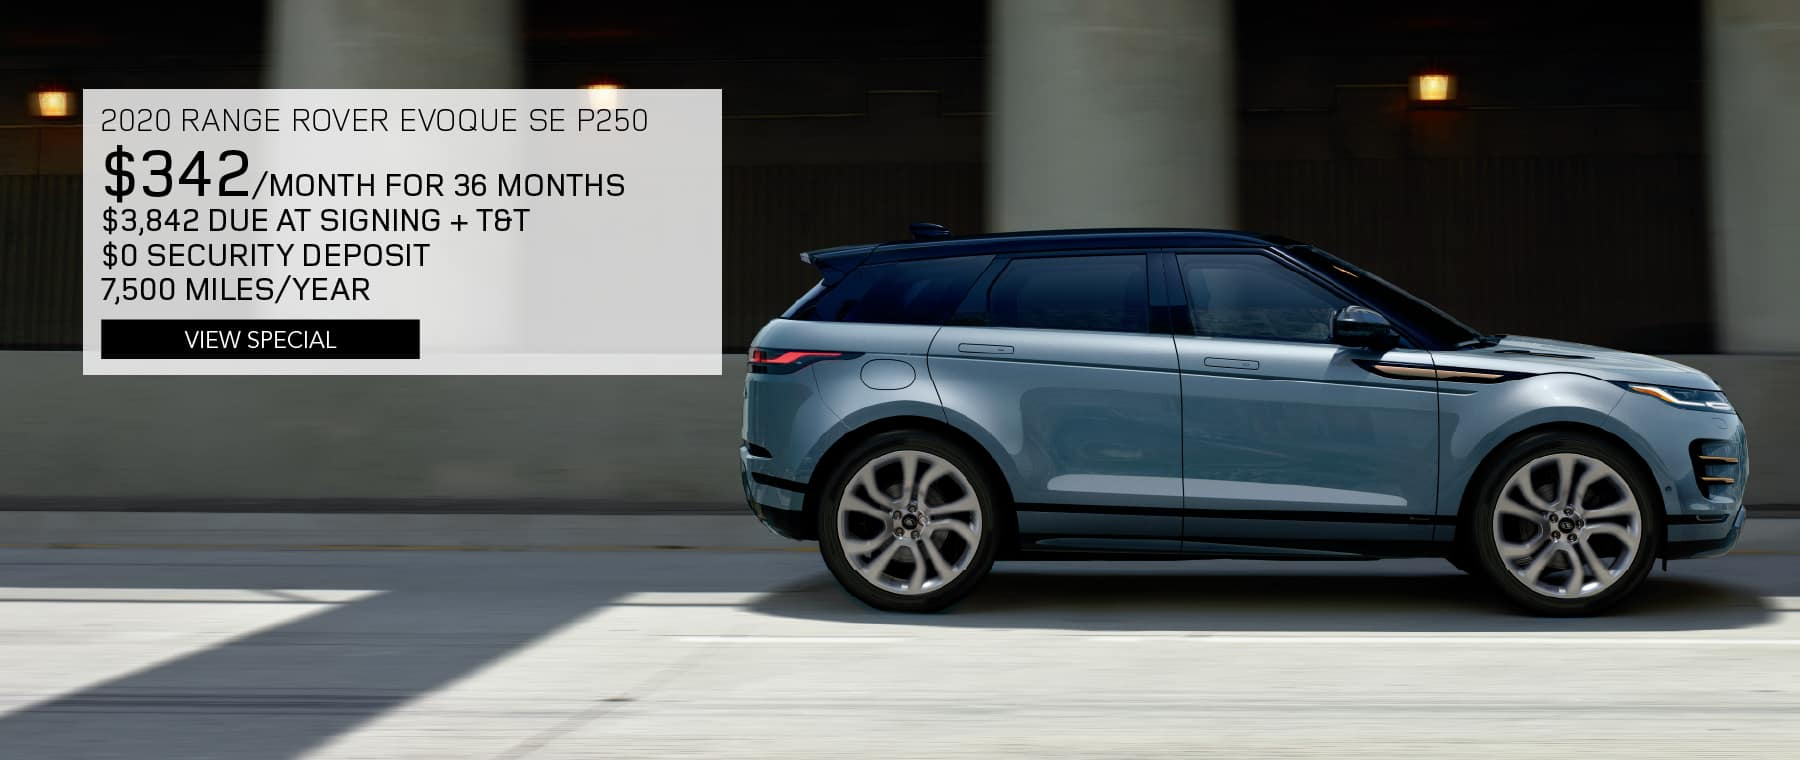 2020 RANGE ROVER EVOQUE SE P250. $342 PER MONTH FOR 36 MONTHS. $3,842 DUE AT SIGNING PLUS TAX AND TITLE. $0 SECURITY DEPOSIT. 7,500 MILES PER YEAR. VIEW SPECIAL. BLUE RANGE ROVER EVOQUE DRIVING DOWN ROAD IN CITY.